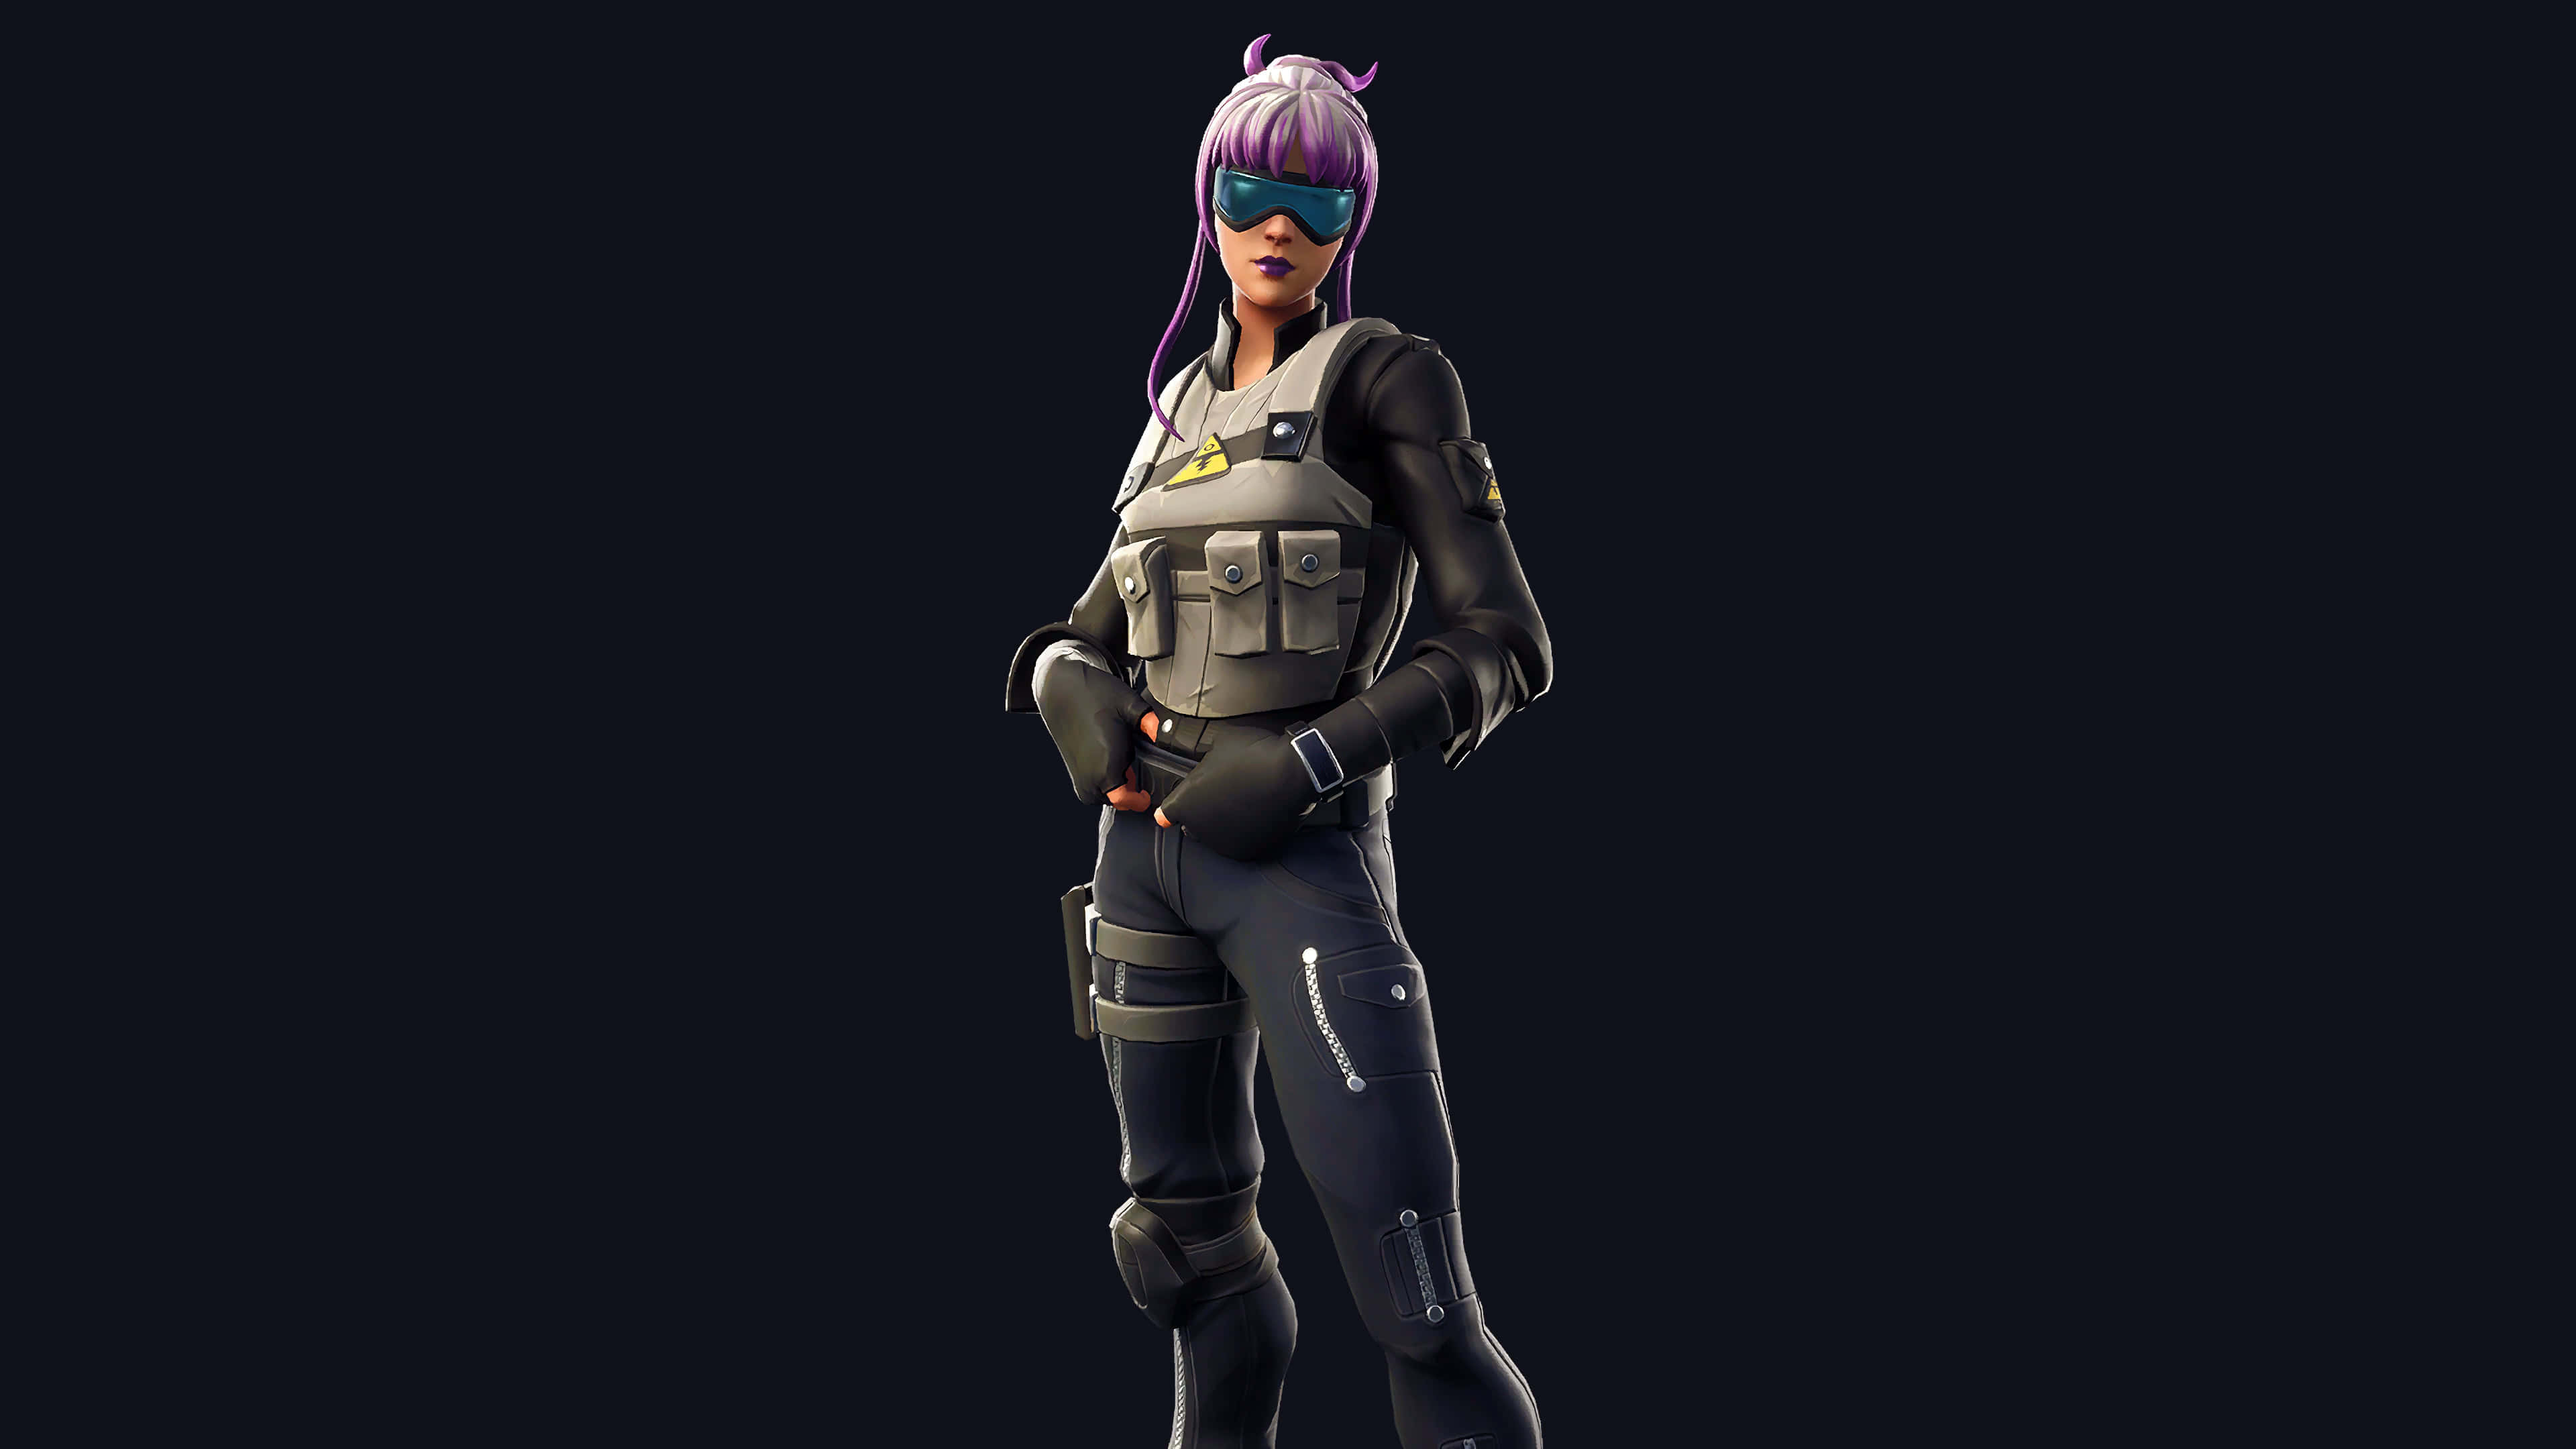 fortnite bracer skin outfit uhd 4k wallpaper